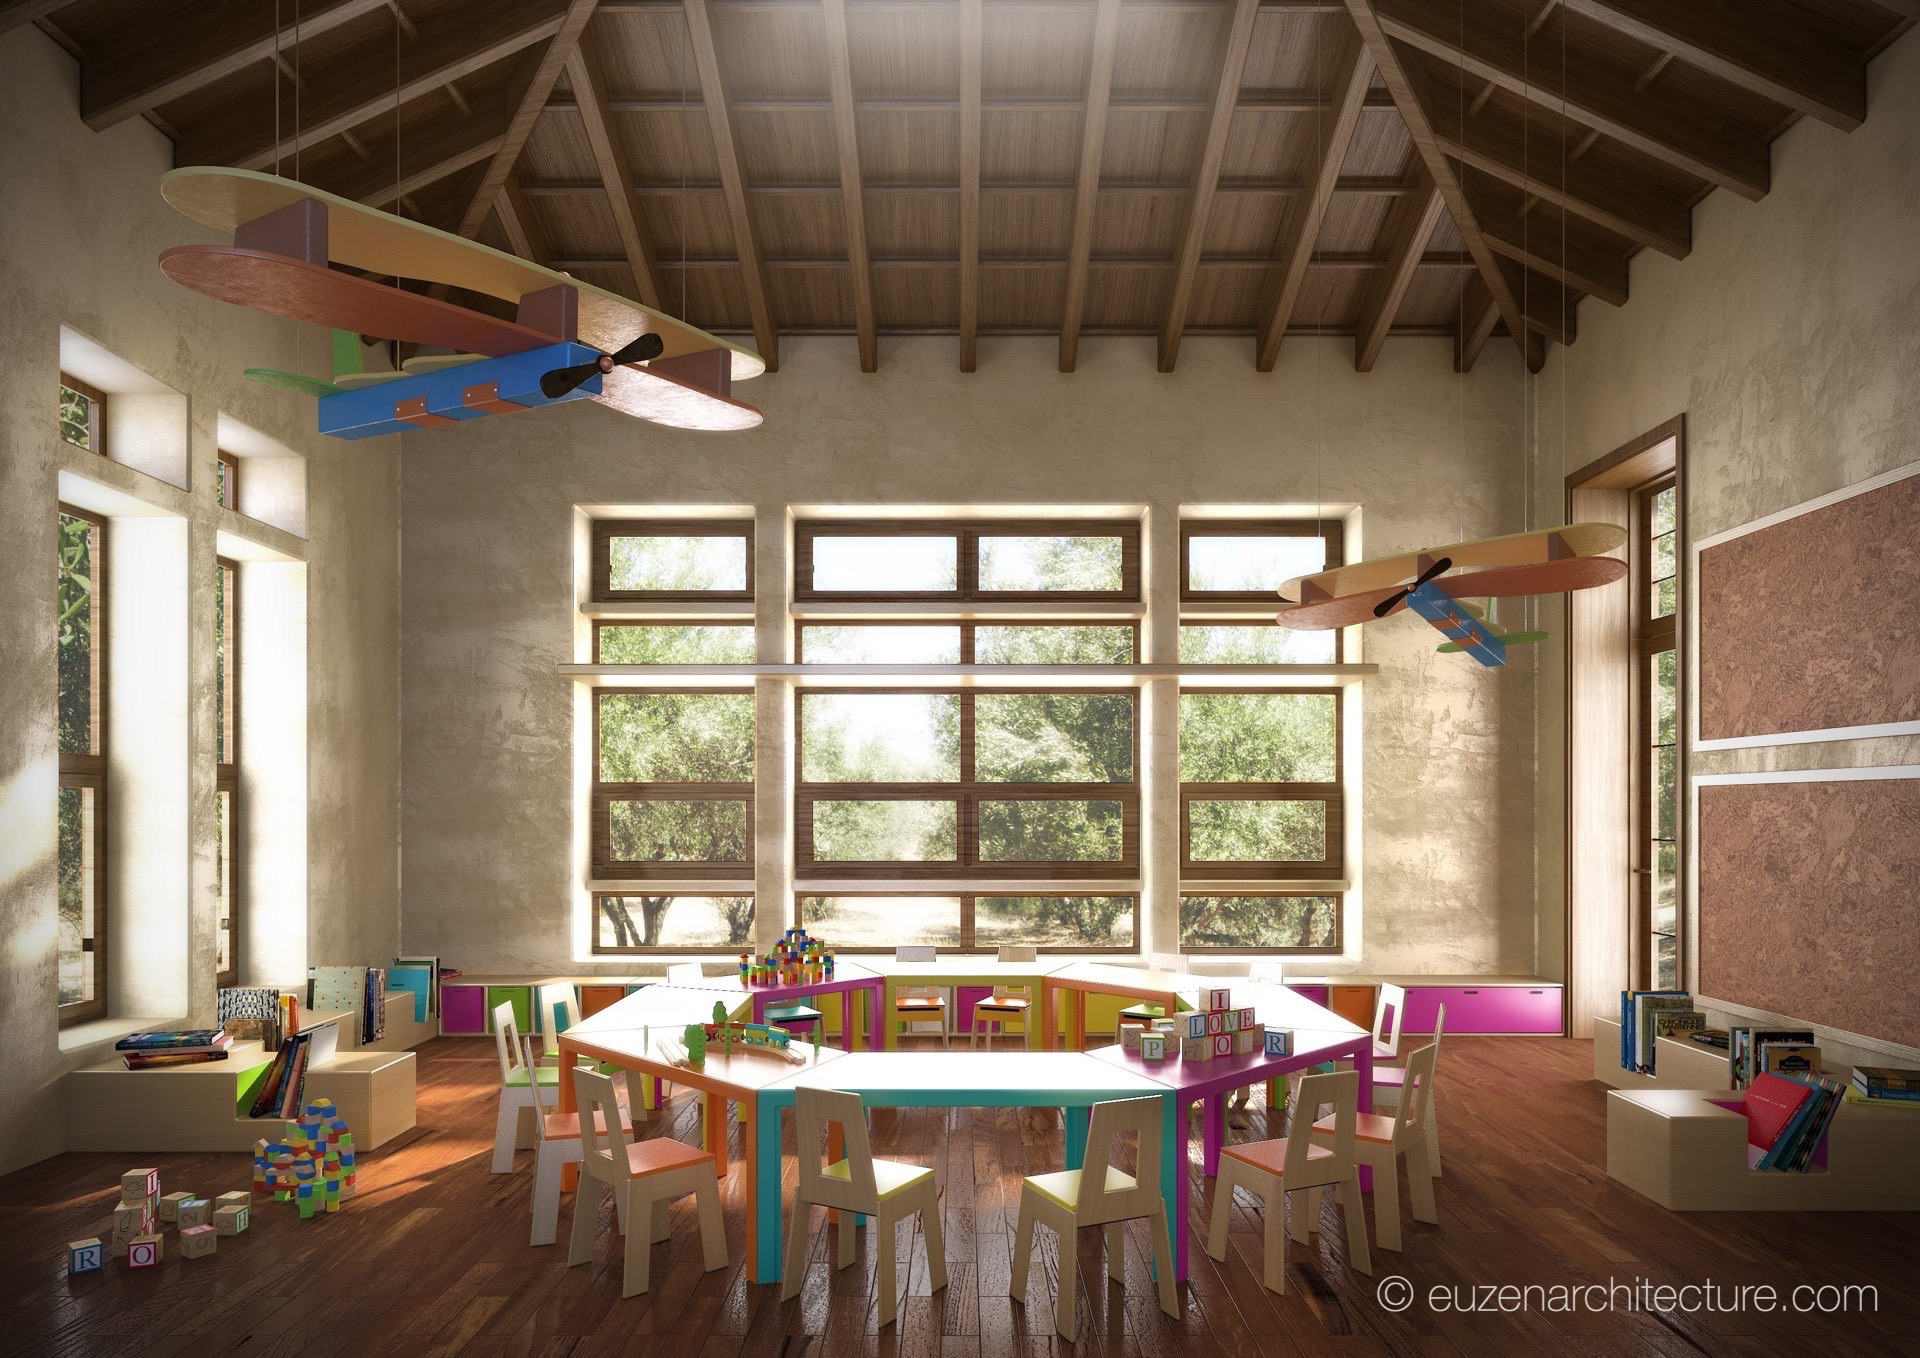 4.KindergartenClassInterior